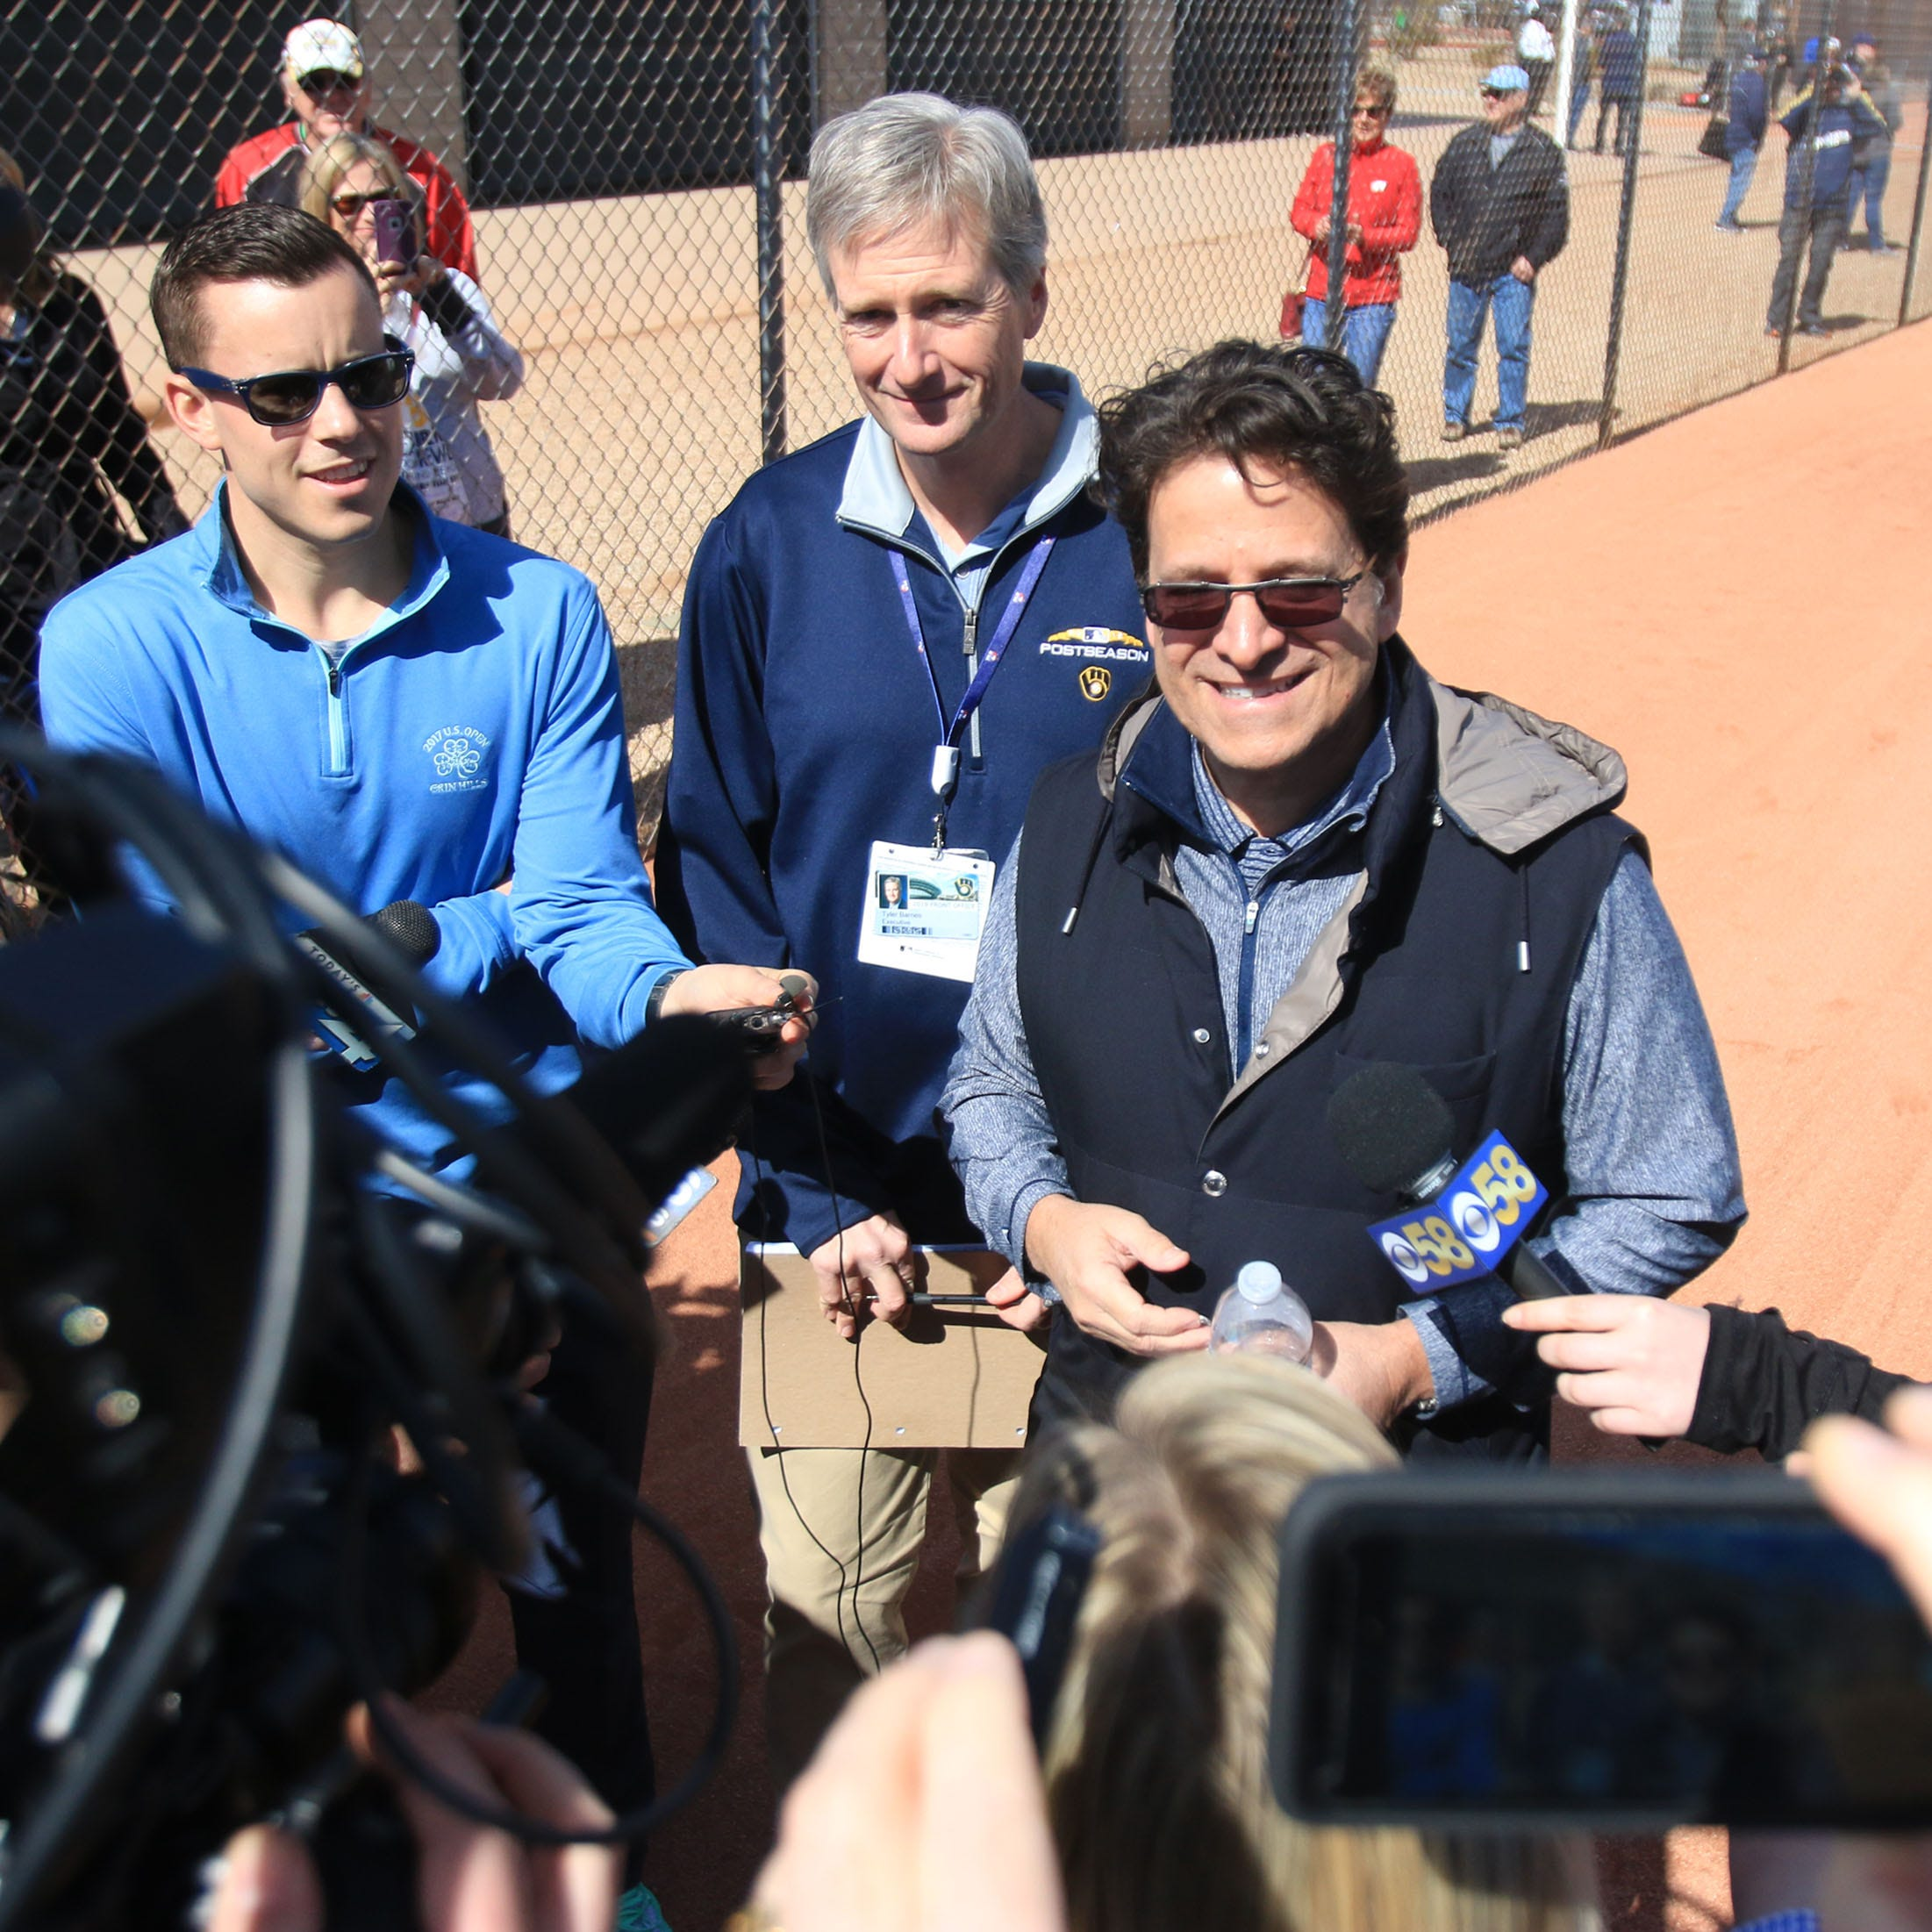 Brewers owner Mark Attanasio on the team's chances: 'All the chips are all in now.'